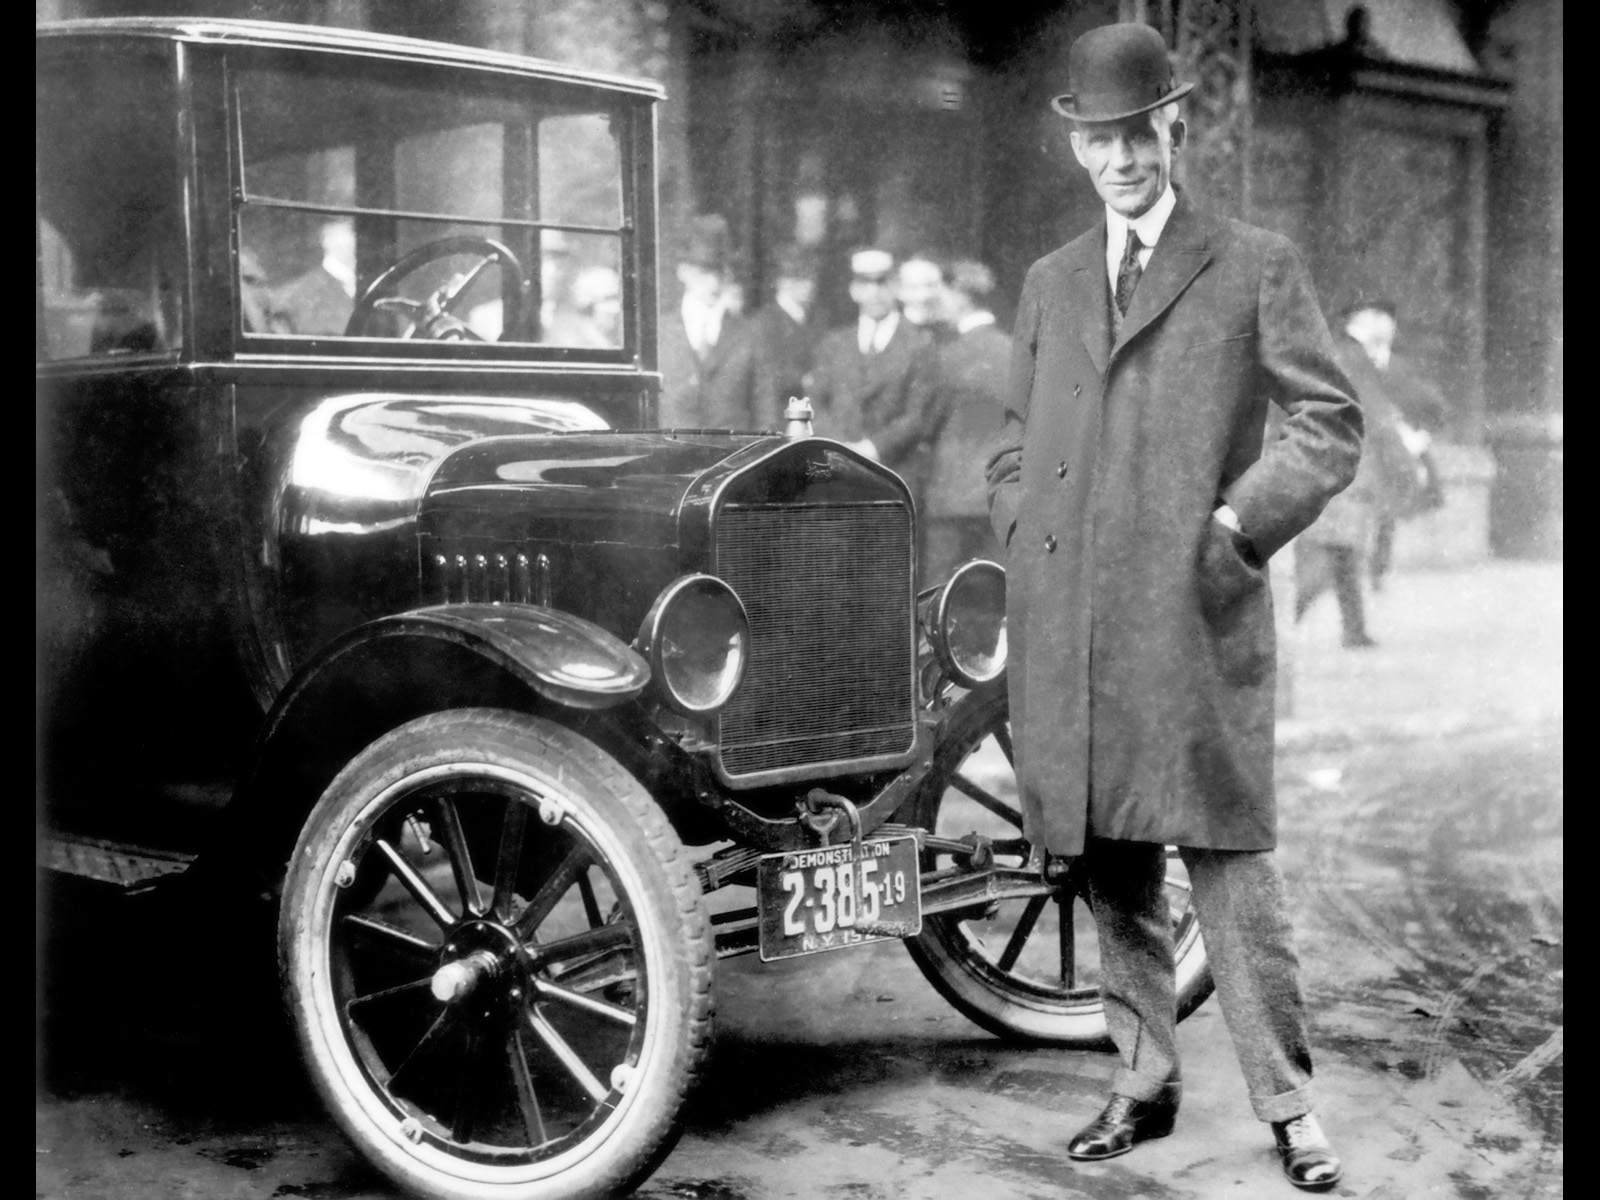 Henry Ford et la Ford T - image mise à disposition by By Ford Motor Company [Public domain], via Wikimedia Commons